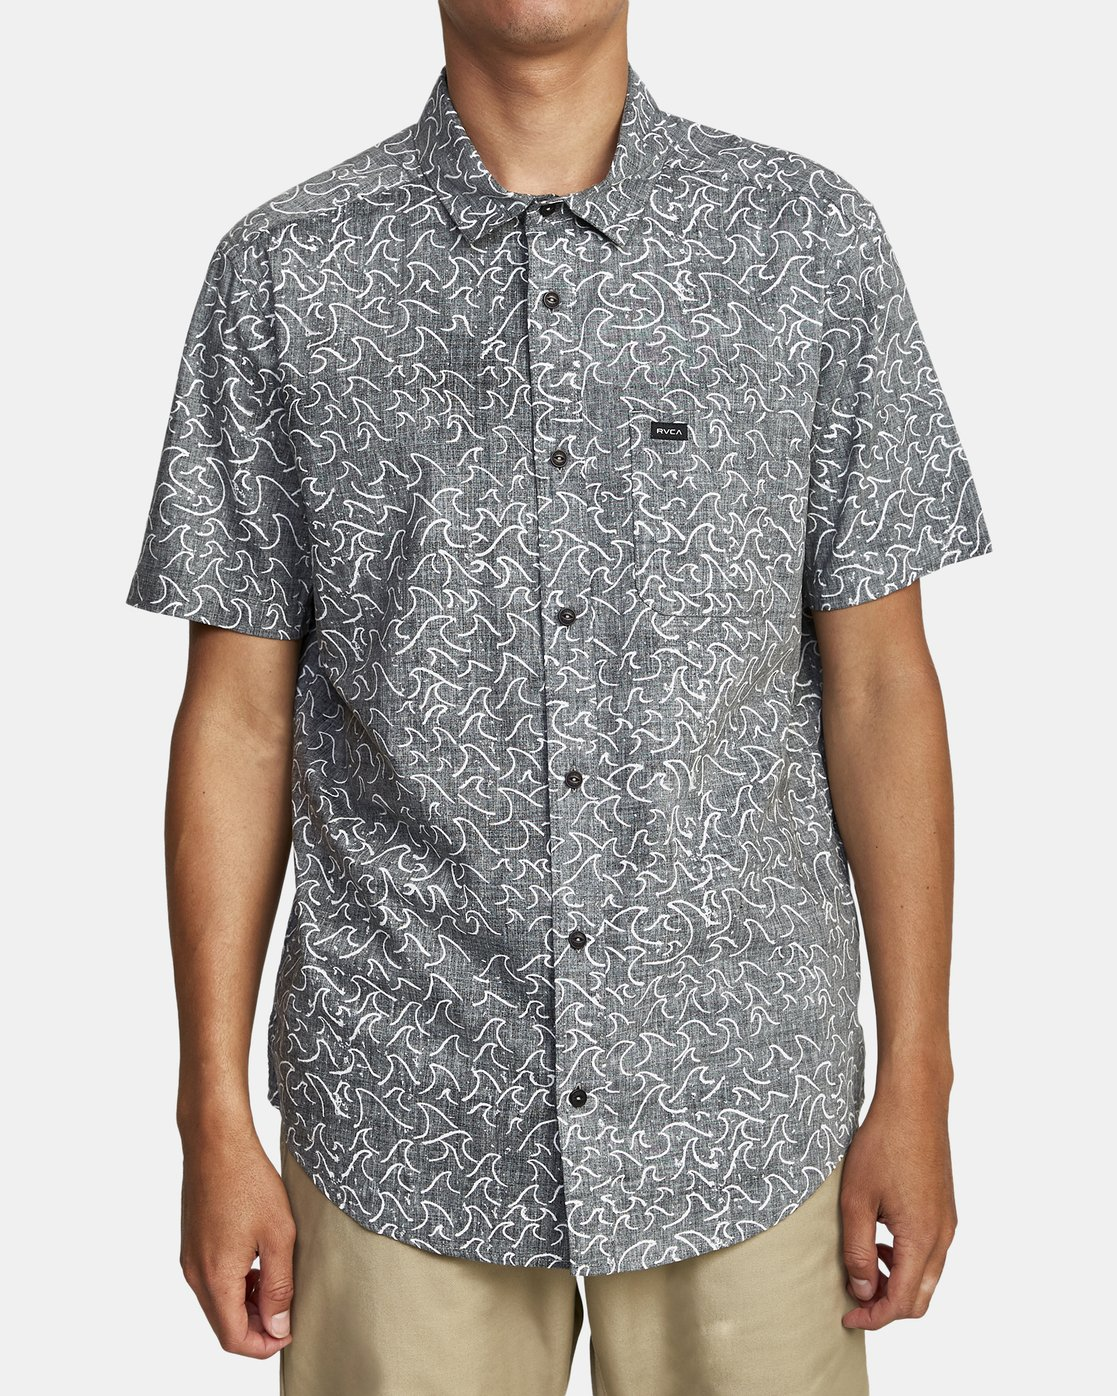 0 OBLOW WAVES SHORT SLEEVE SHIRT Black M5172ROW RVCA